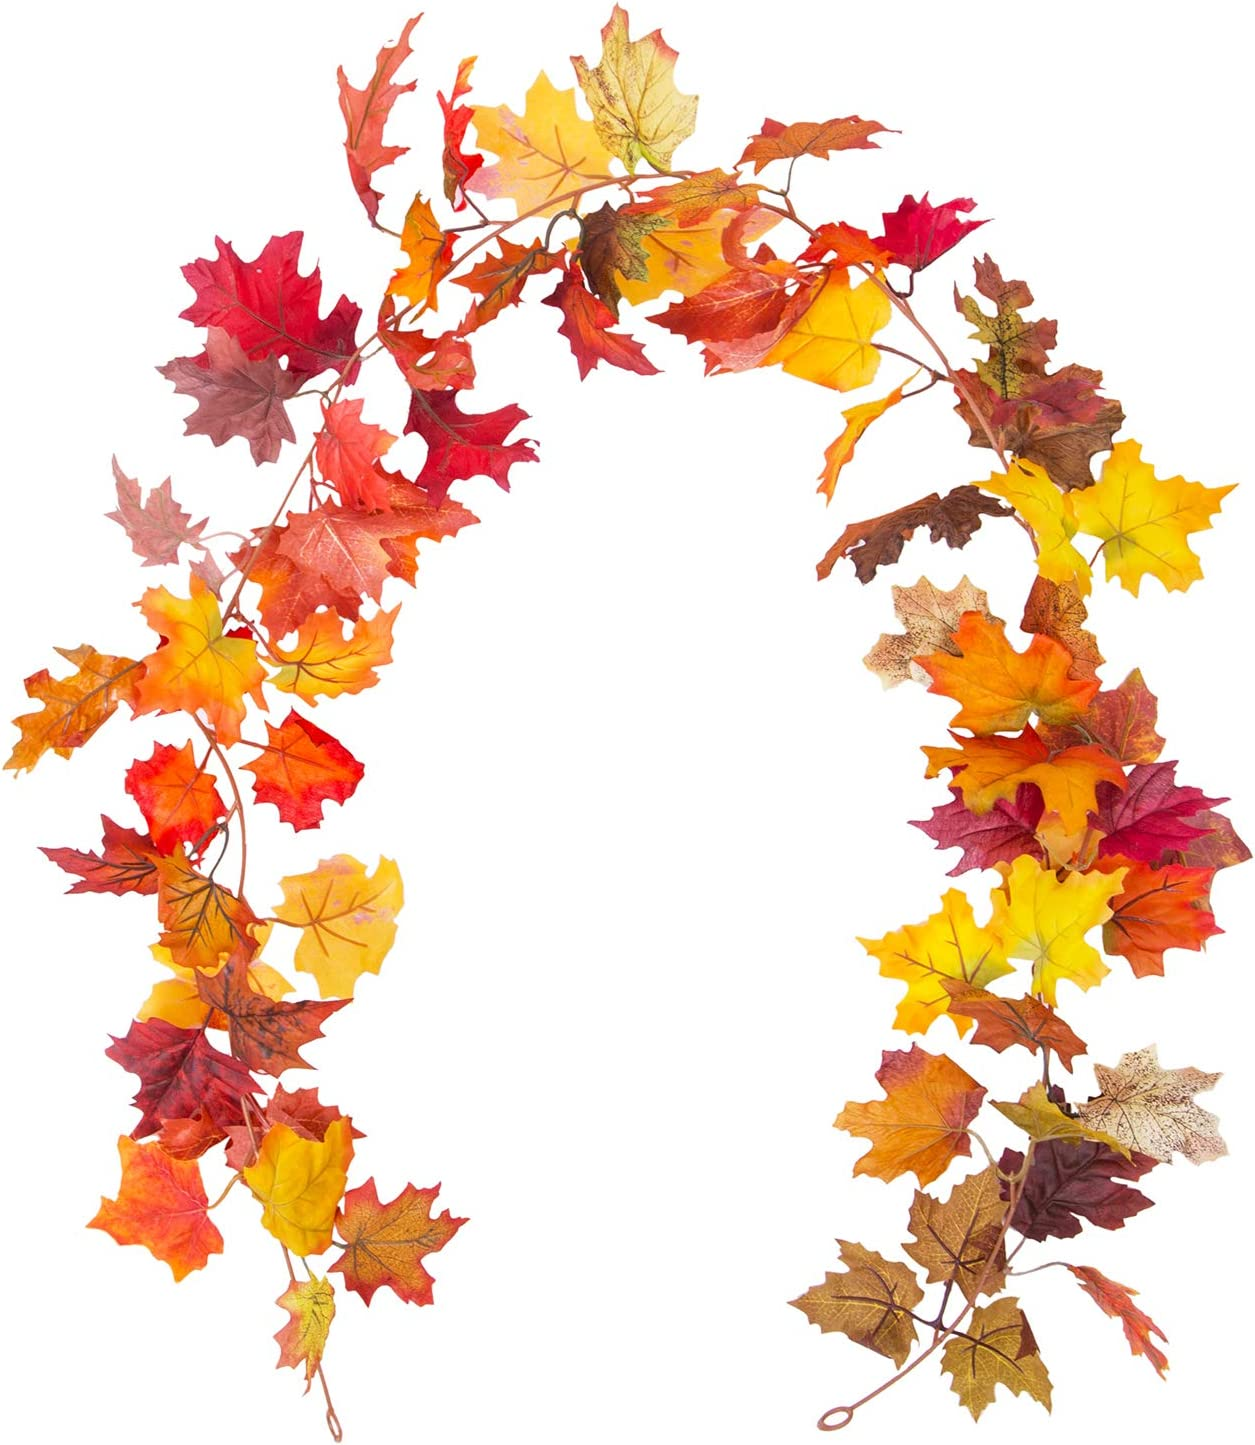 Korlon Fall Maple Leaf Garland, 5.9 Ft Thanksgiving Leaf Garland Fall Decor Artificial Silk Mantel Garland for Autumn Indoor & Outdoor Decor